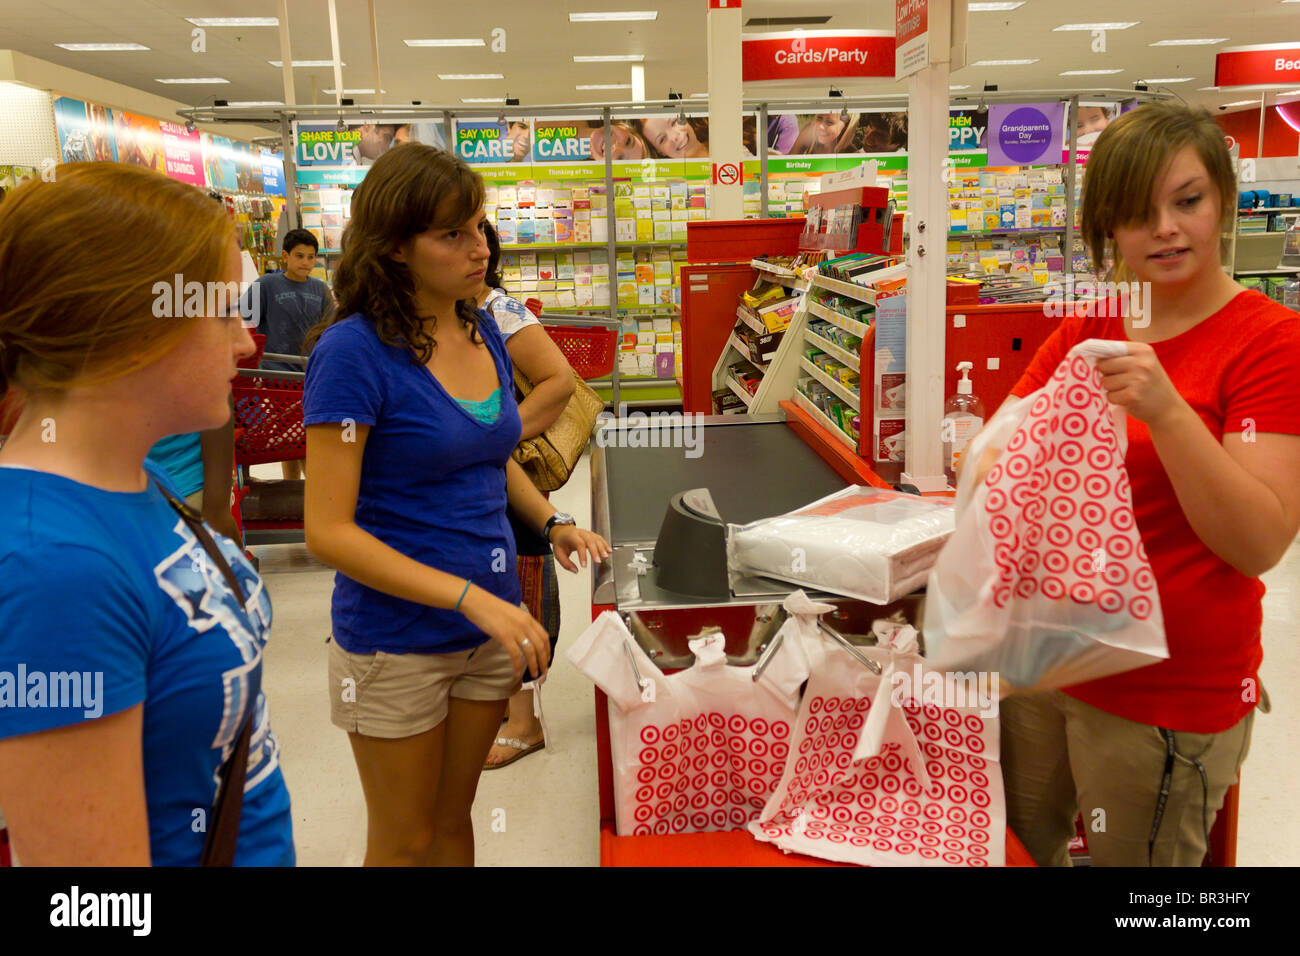 Target Store Usa Stock Photos & Target Store Usa Stock Images - Alamy